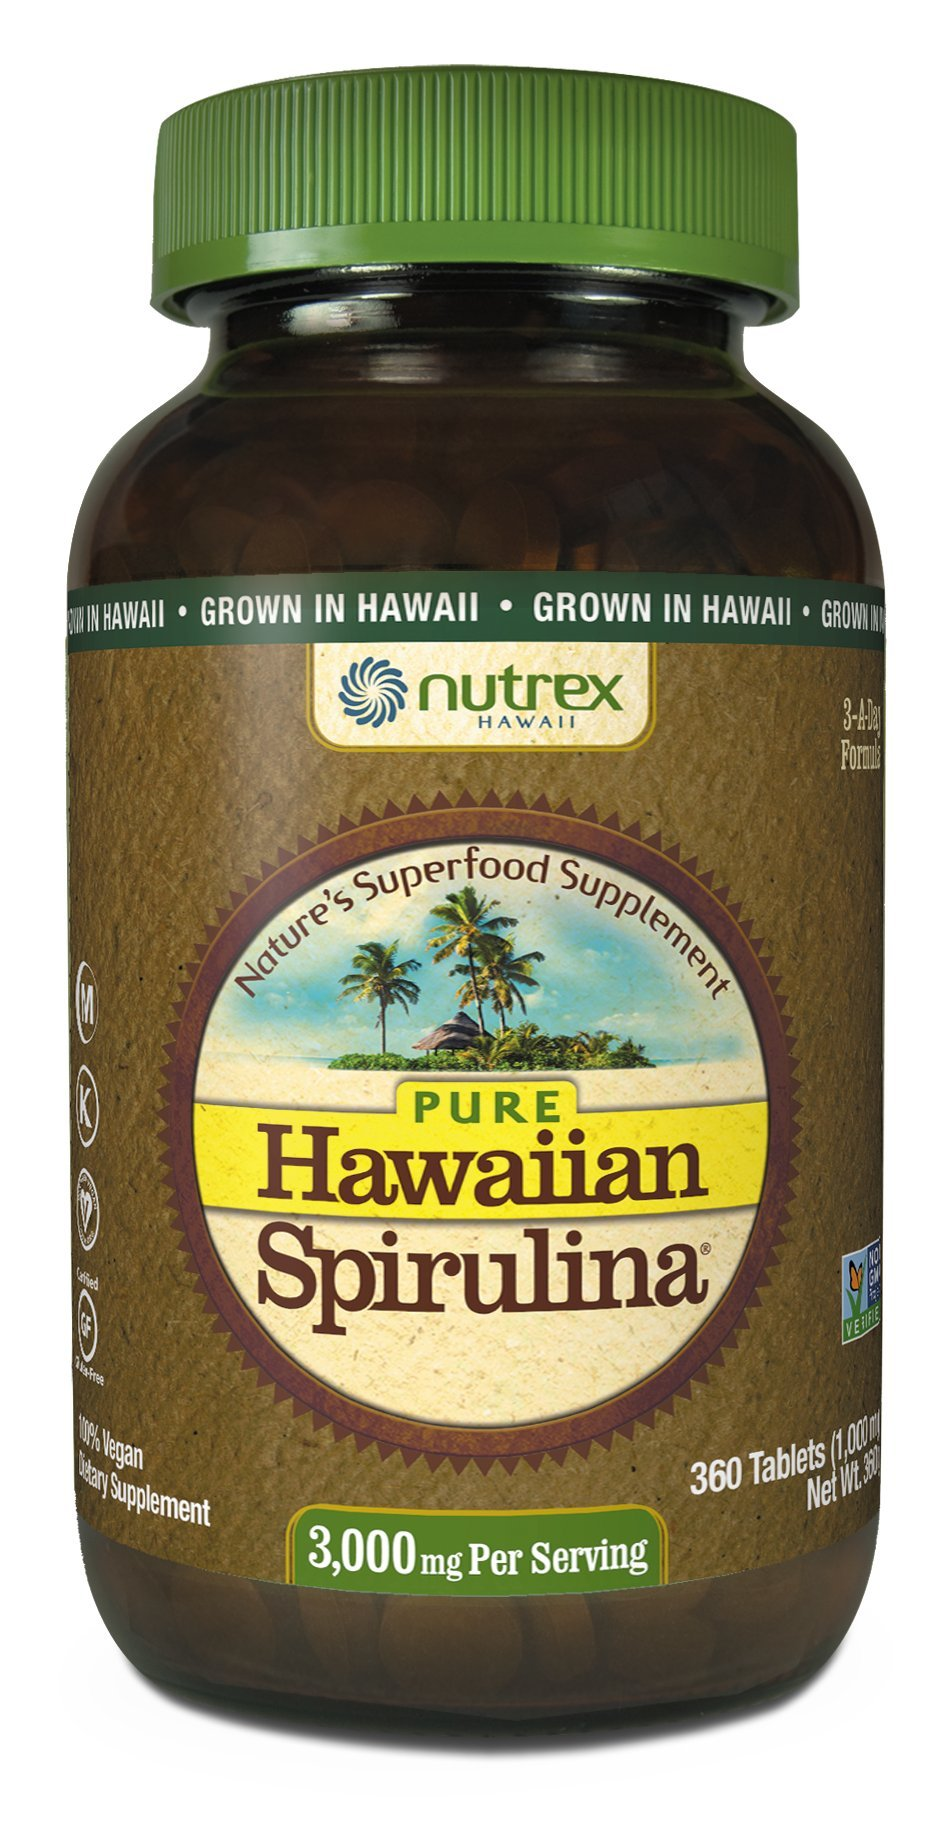 Nutrex Hawaii Pure Hawaiian Spirulina 1000mg-360 Tablets by NUTREX HAWAII